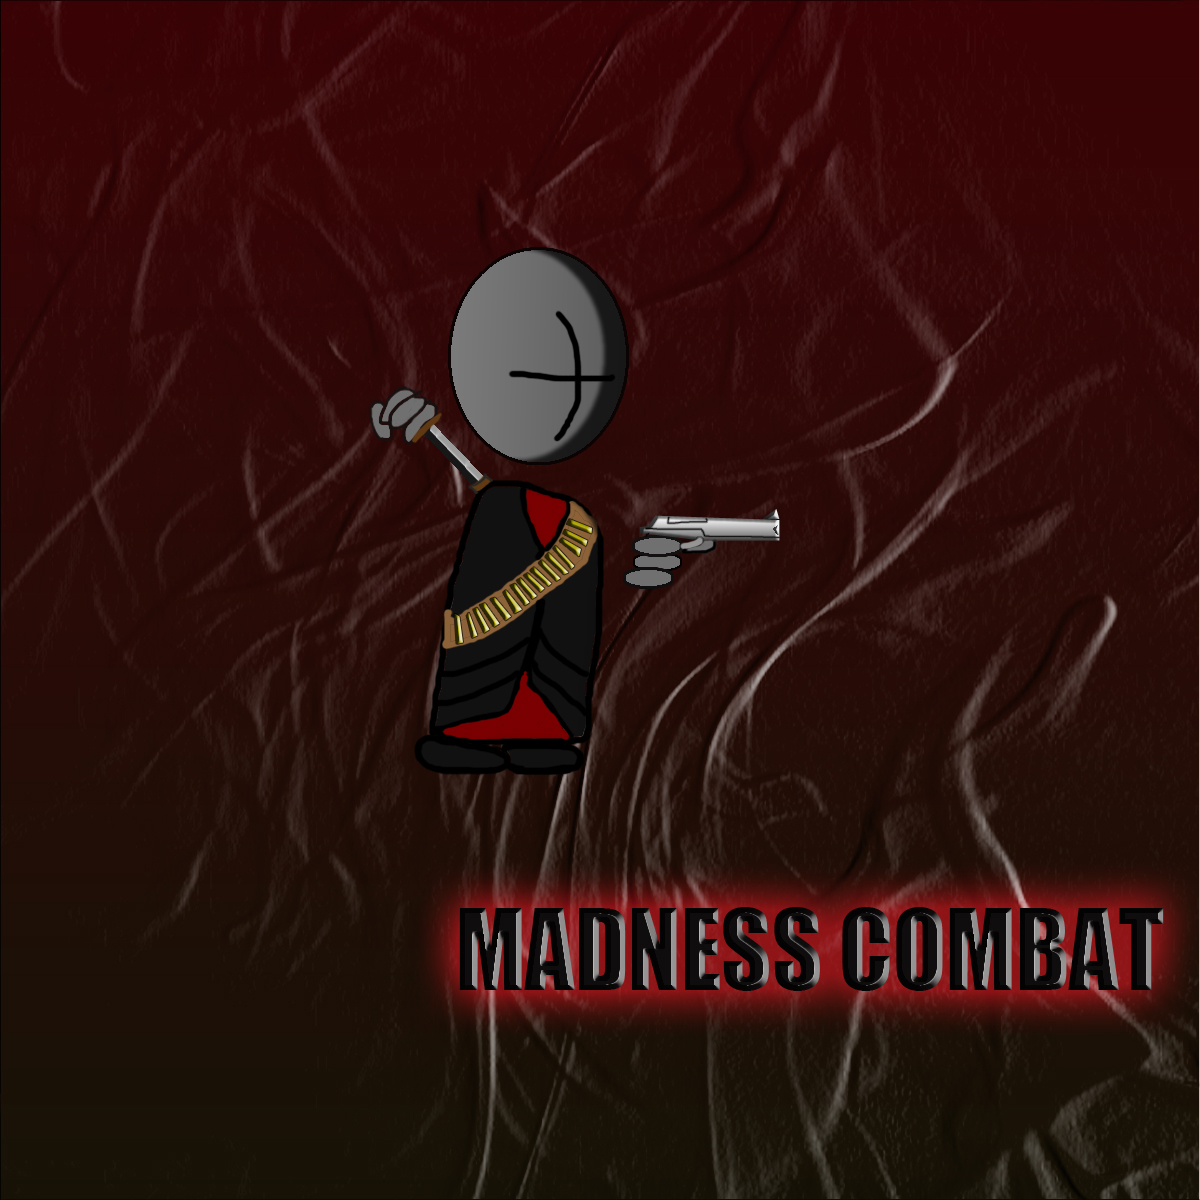 Madness combat soldier